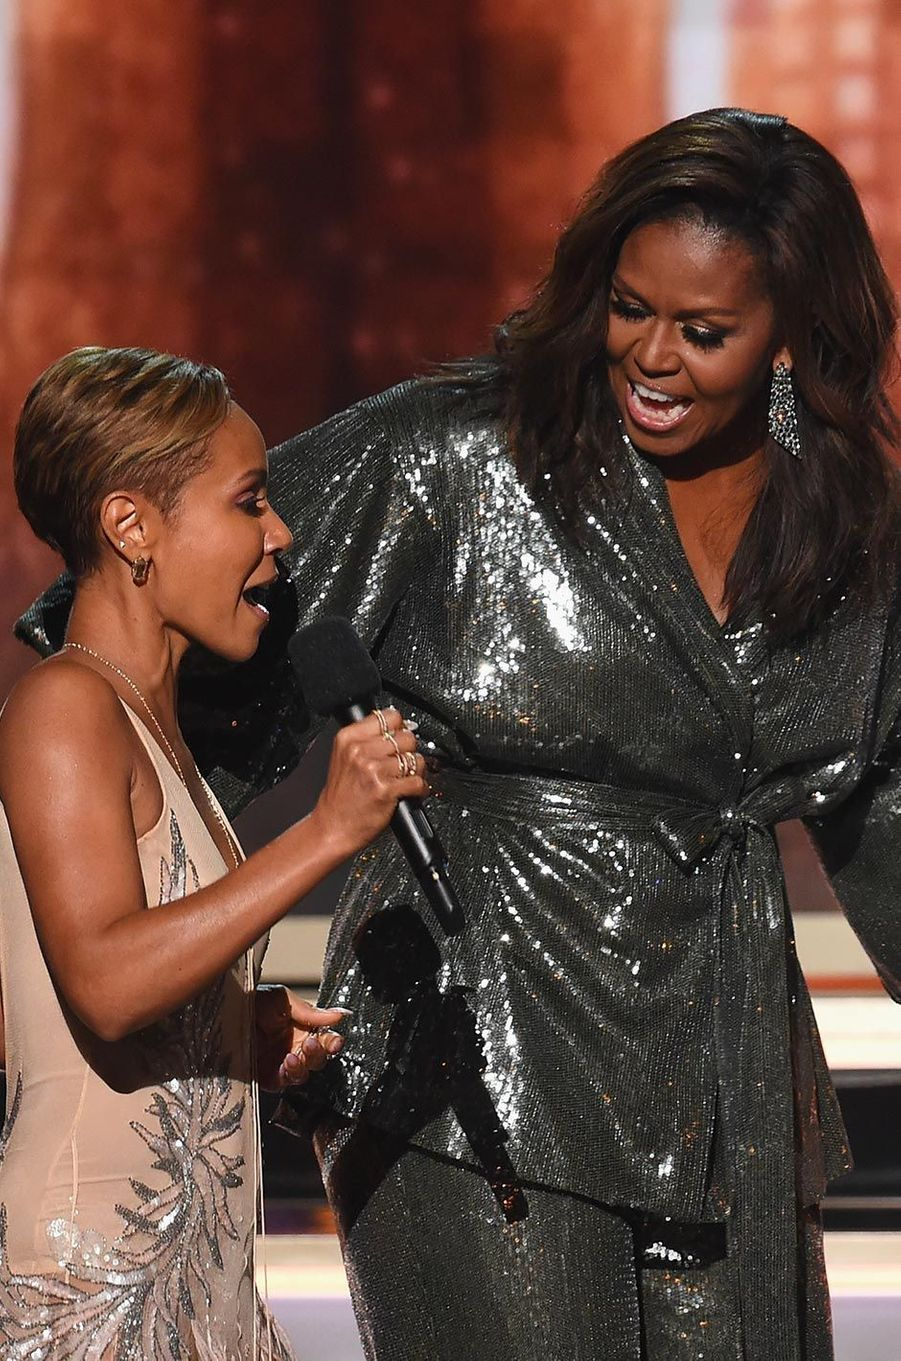 Jada Pinkett Smith et Michelle Obama aux Grammy Awards, le 10 février 2019.